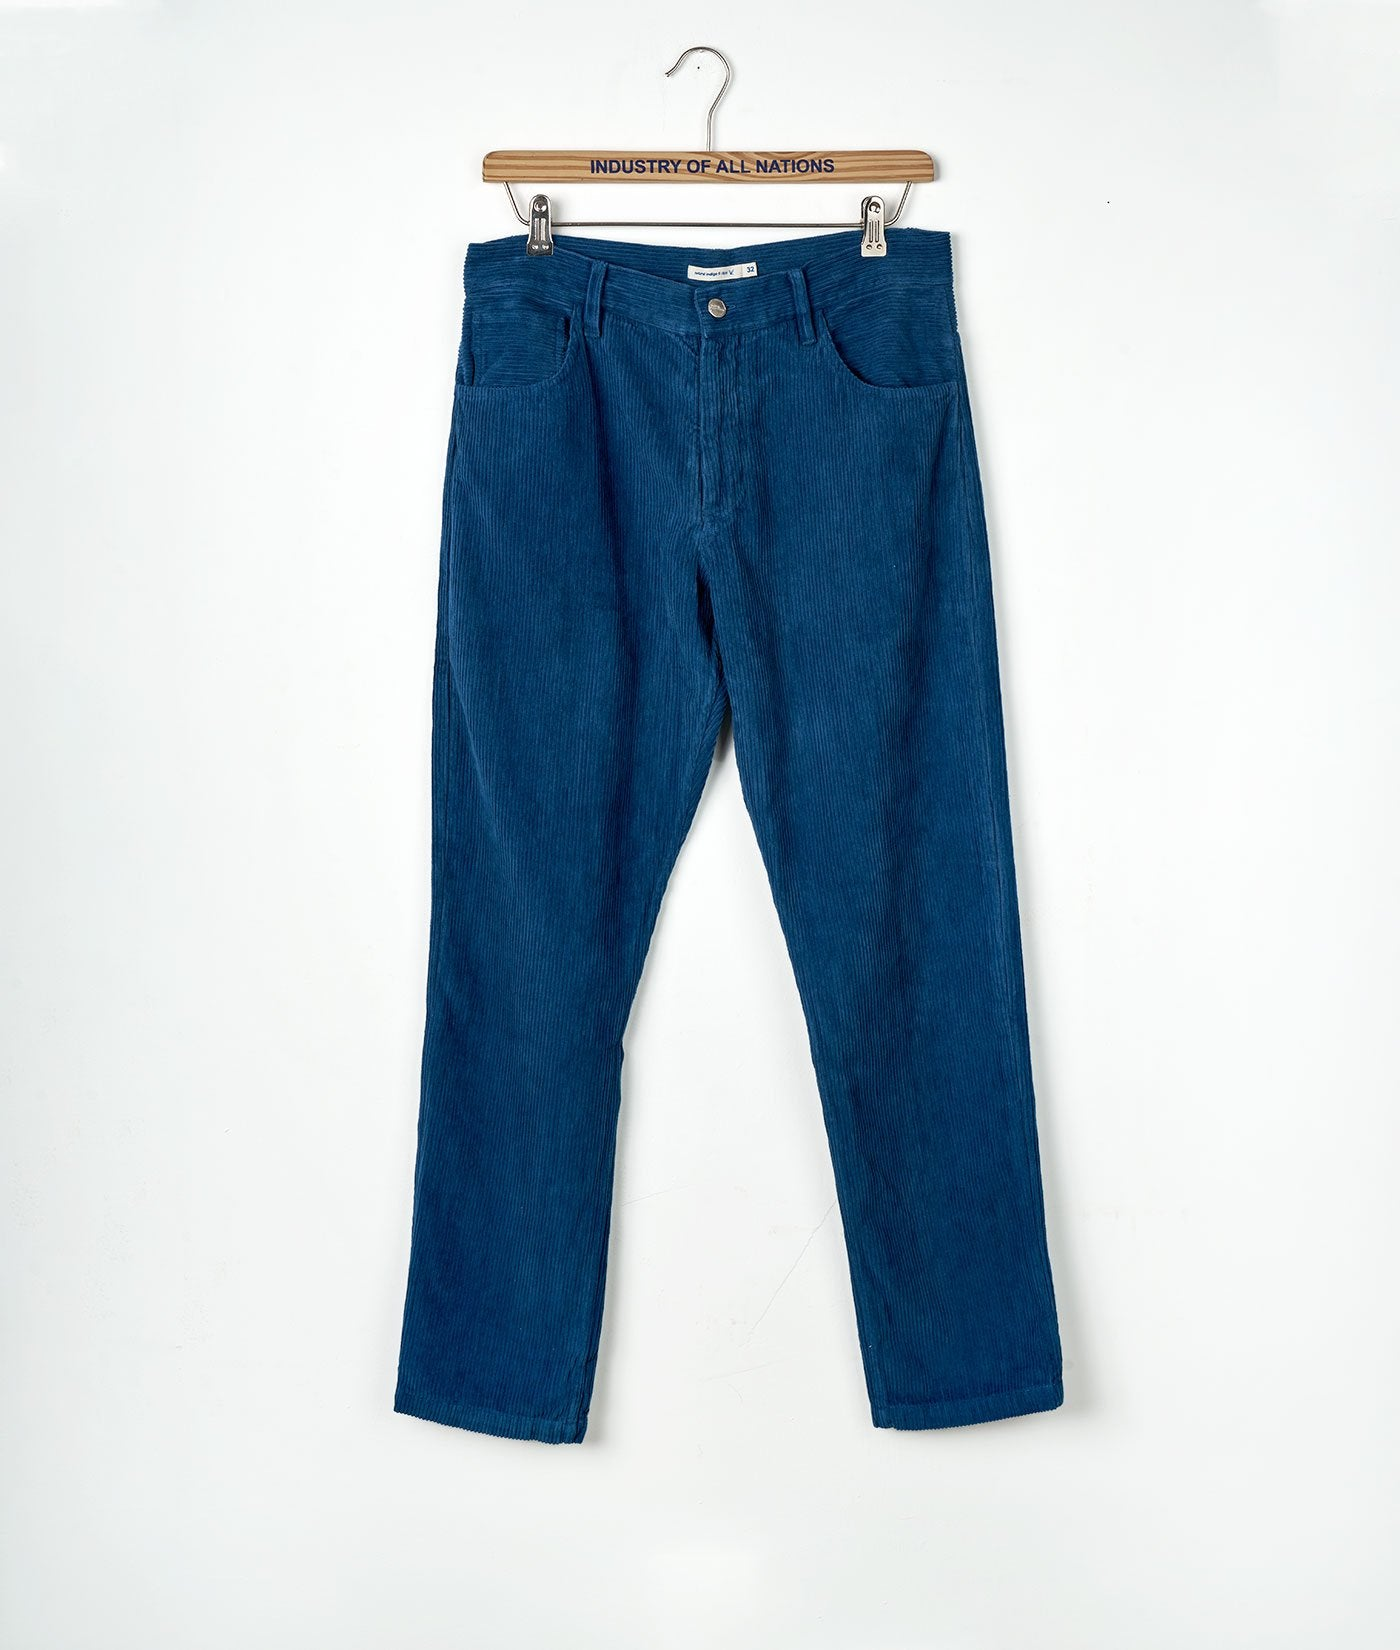 Industry of All Wide Wale Sustainable Corduroy Pants Indigo 6